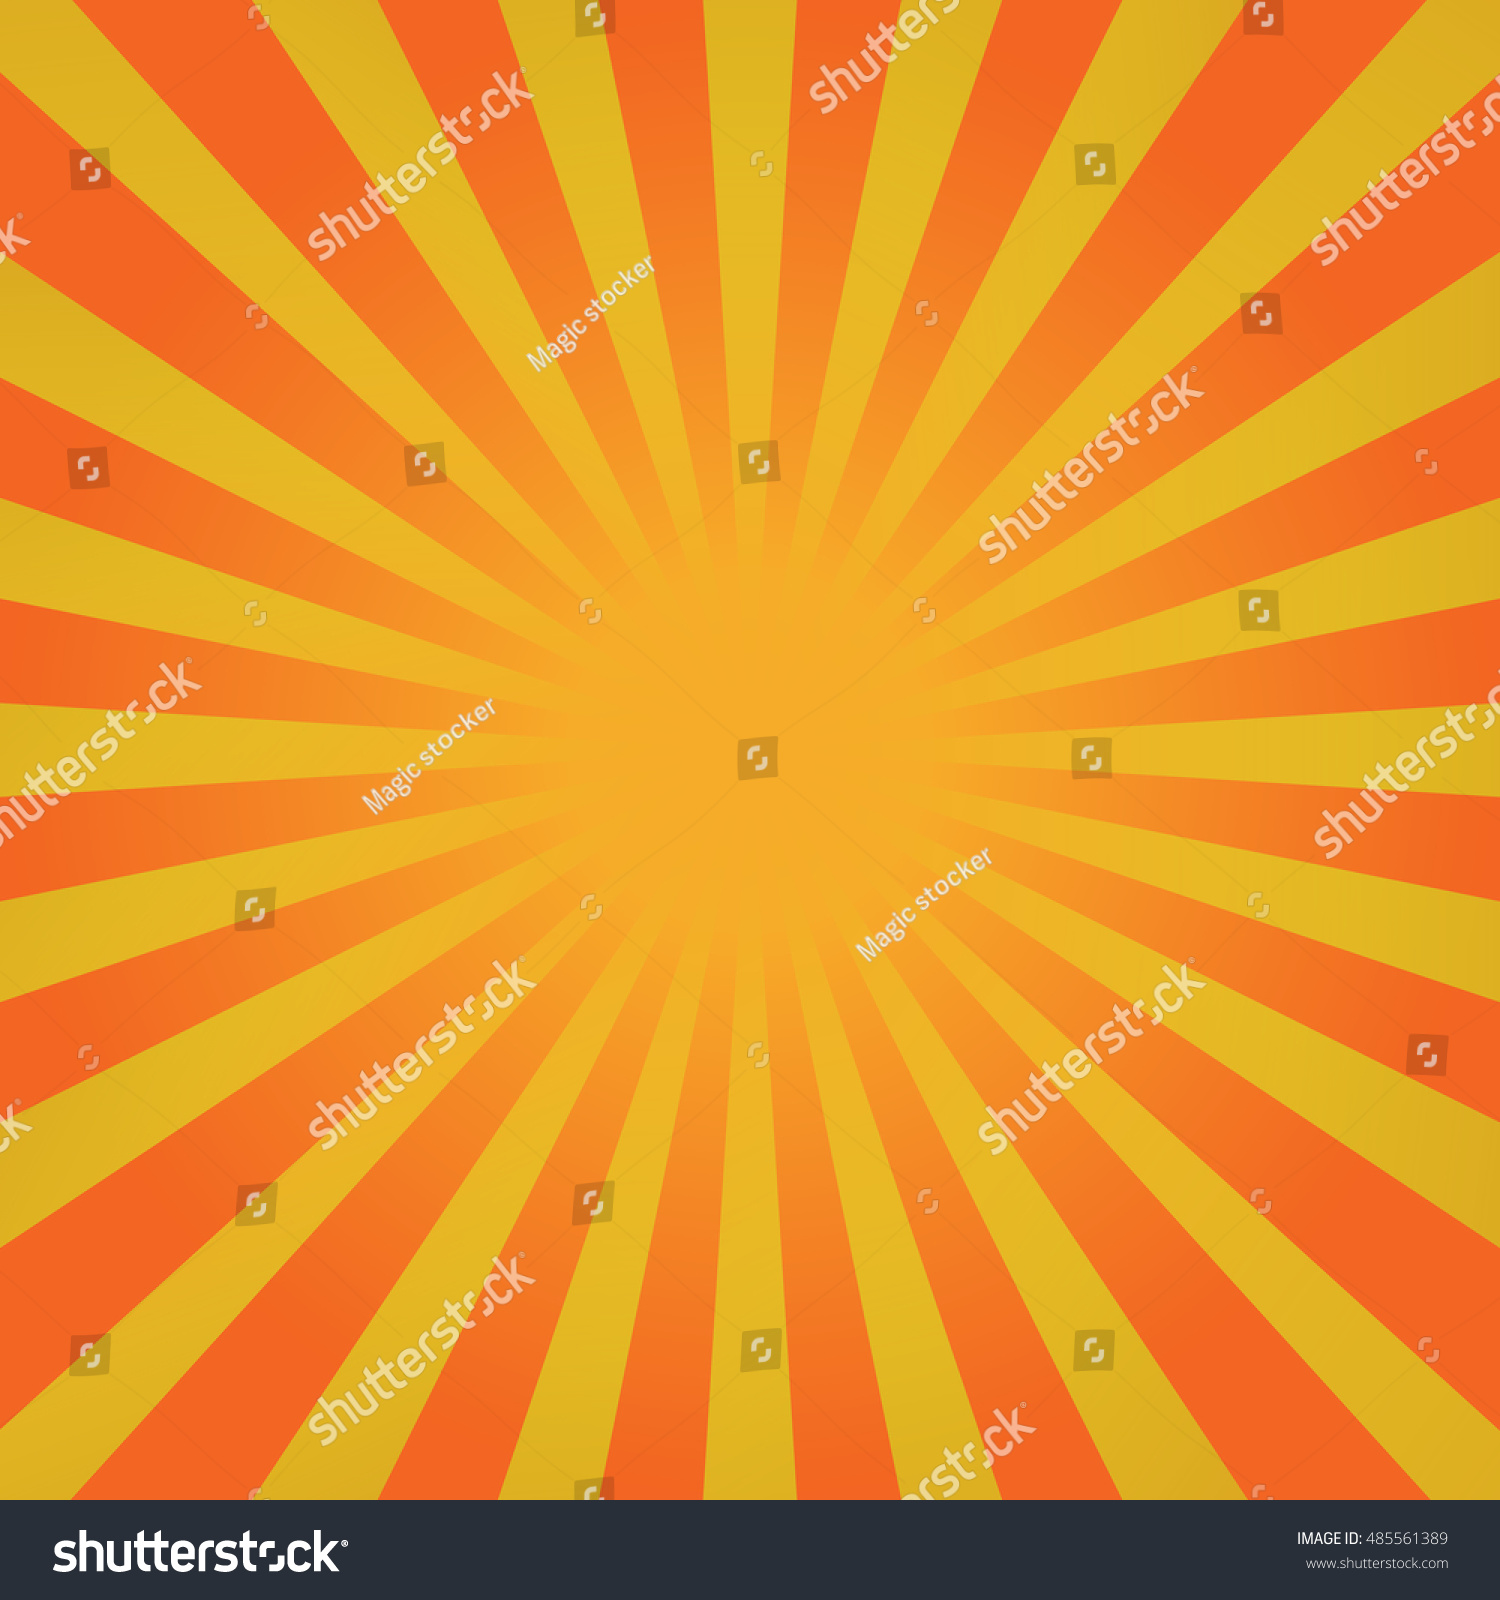 Background image linear gradient - Line Sunray 2d Vector Background Linear Gradient Design Element Clipping Mask